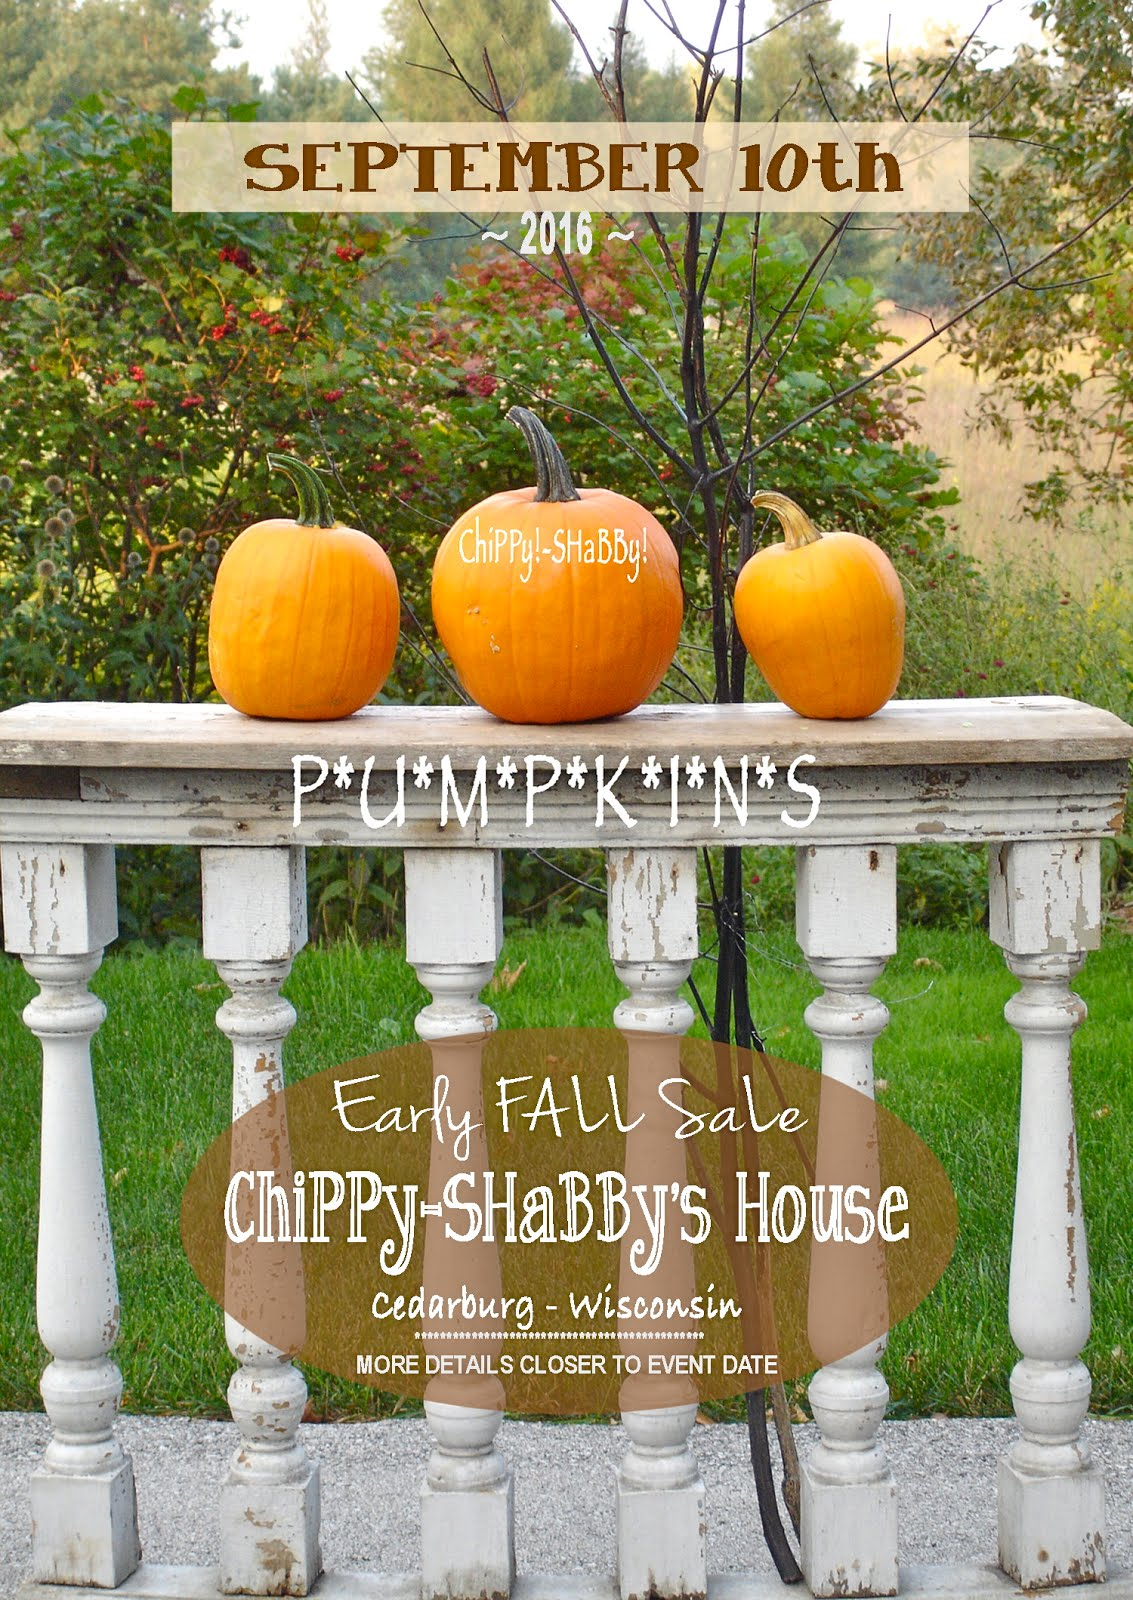 Saturday SEPT. 10th SaLe @ ChiPPy-SHaBBy's House